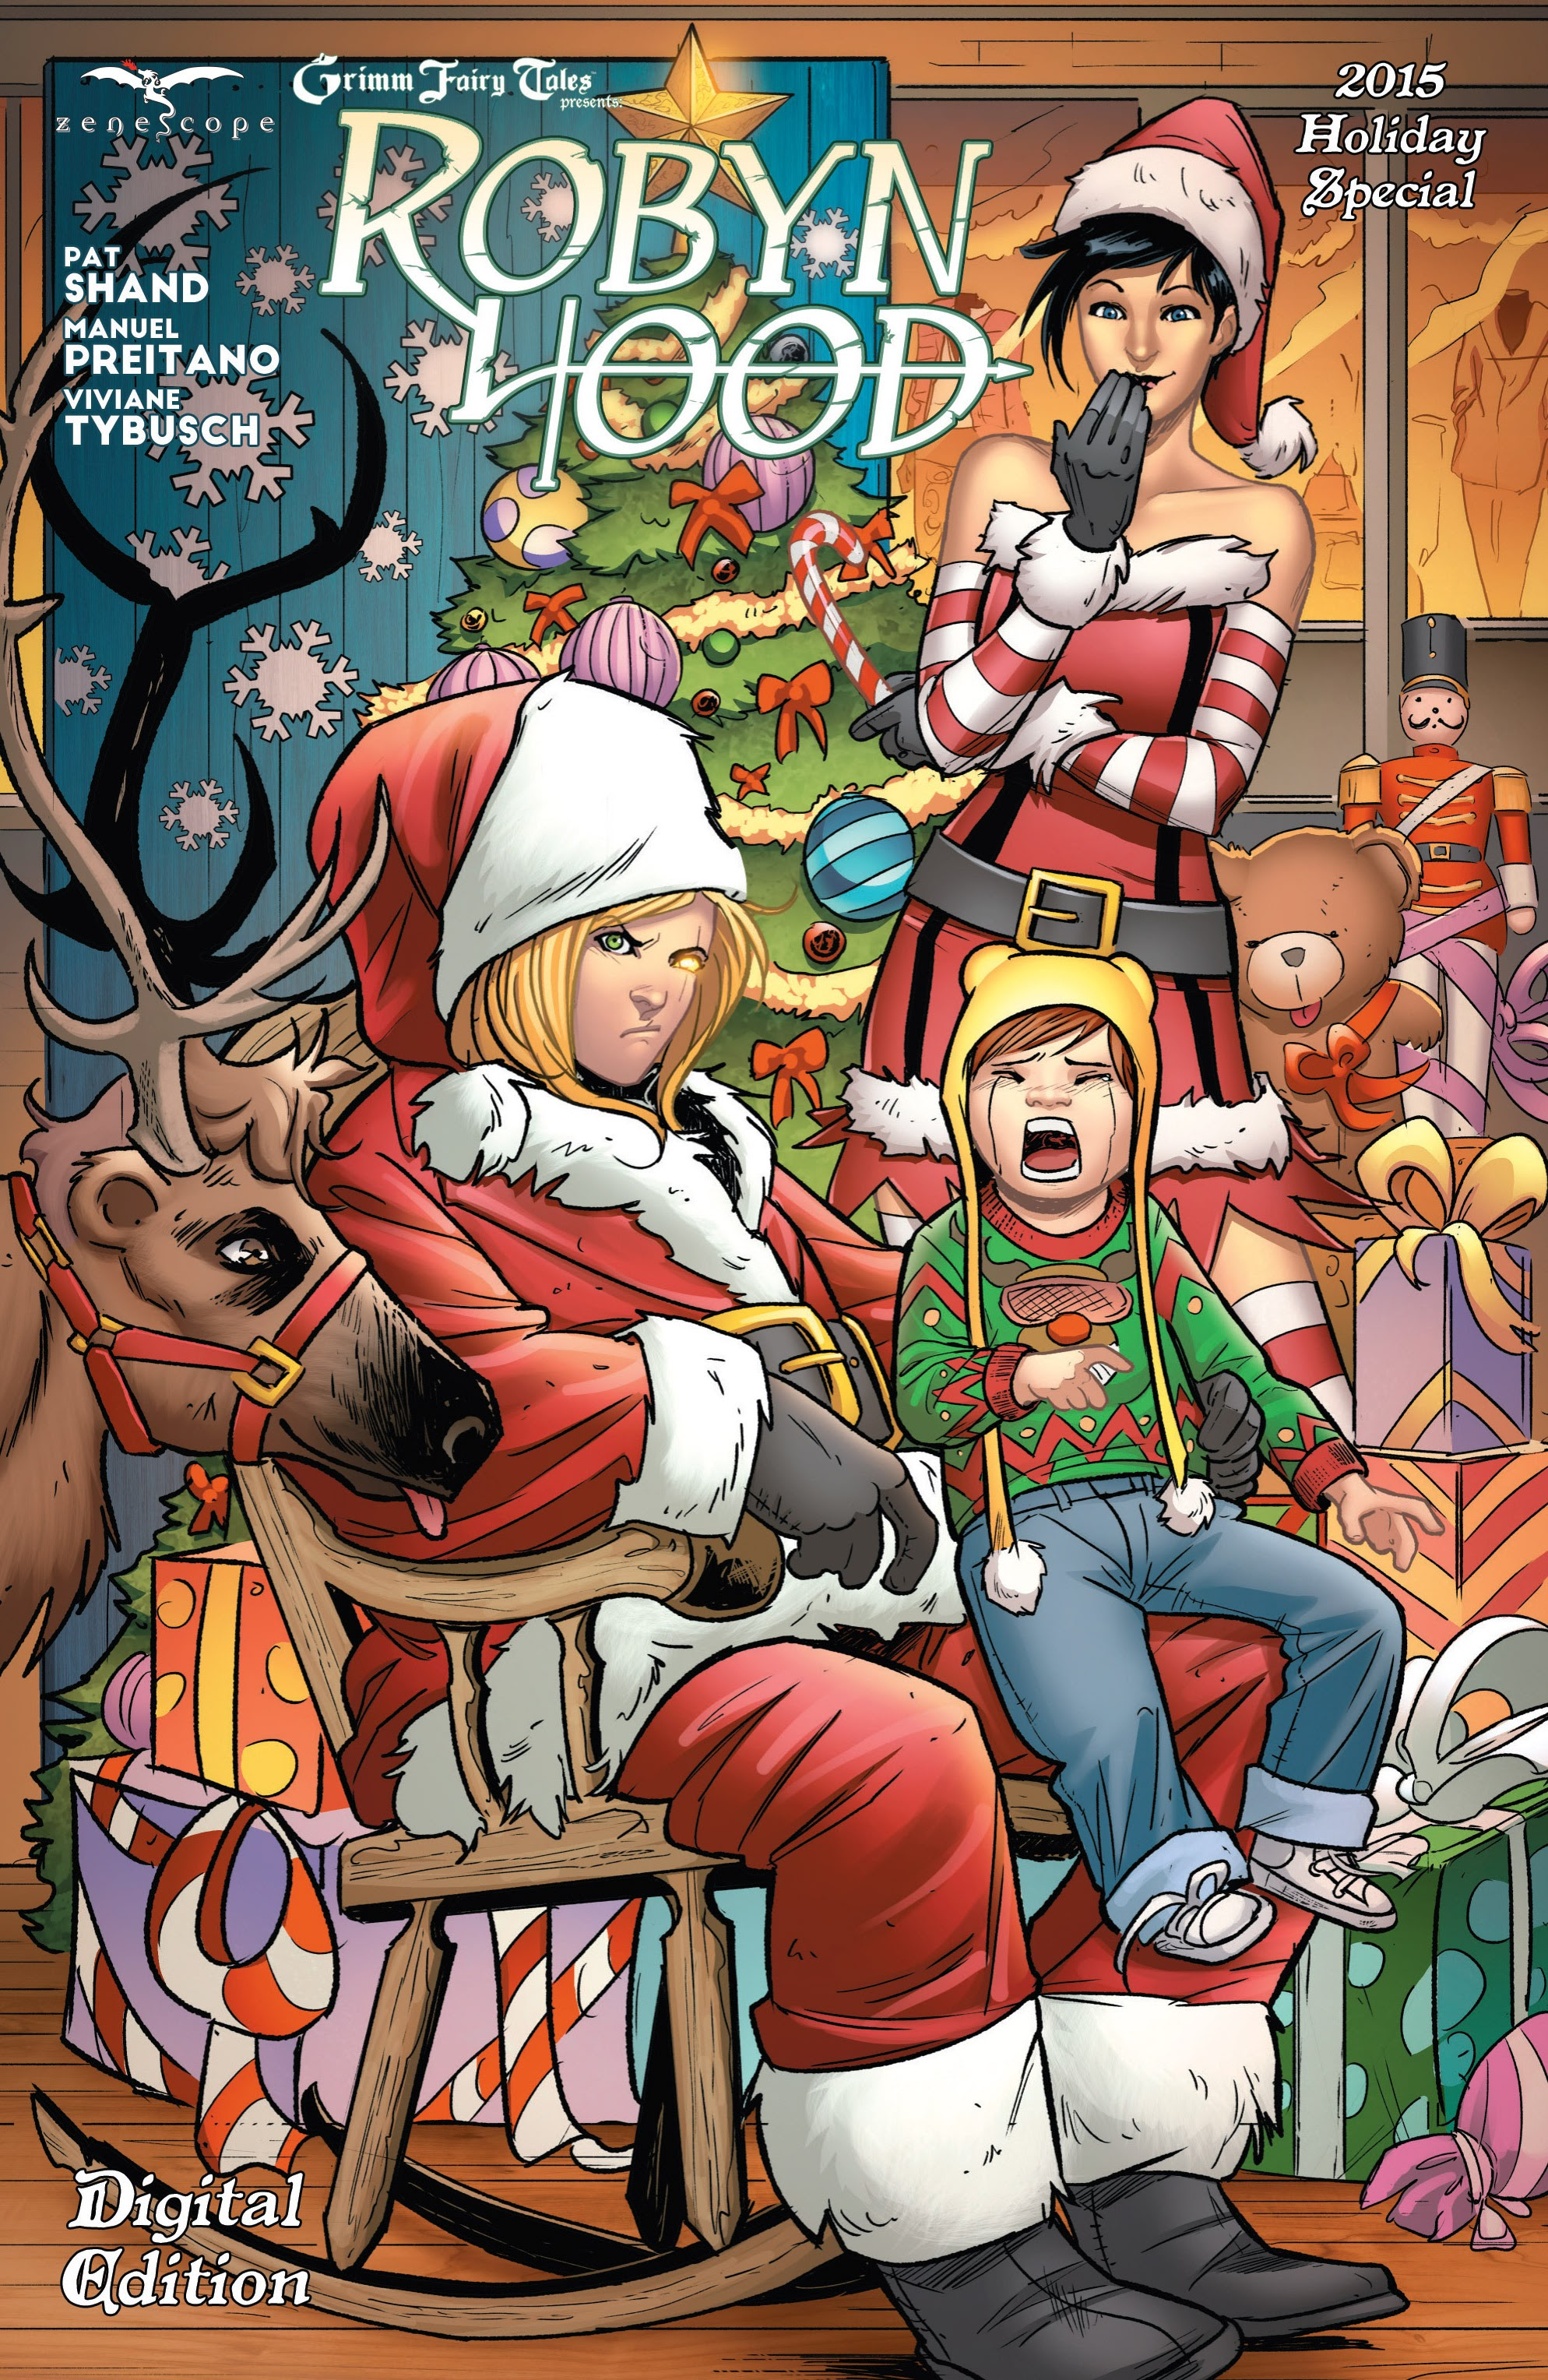 Grimm Fairy Tales presents Robyn Hood 2015 Holiday Special Full Page 1